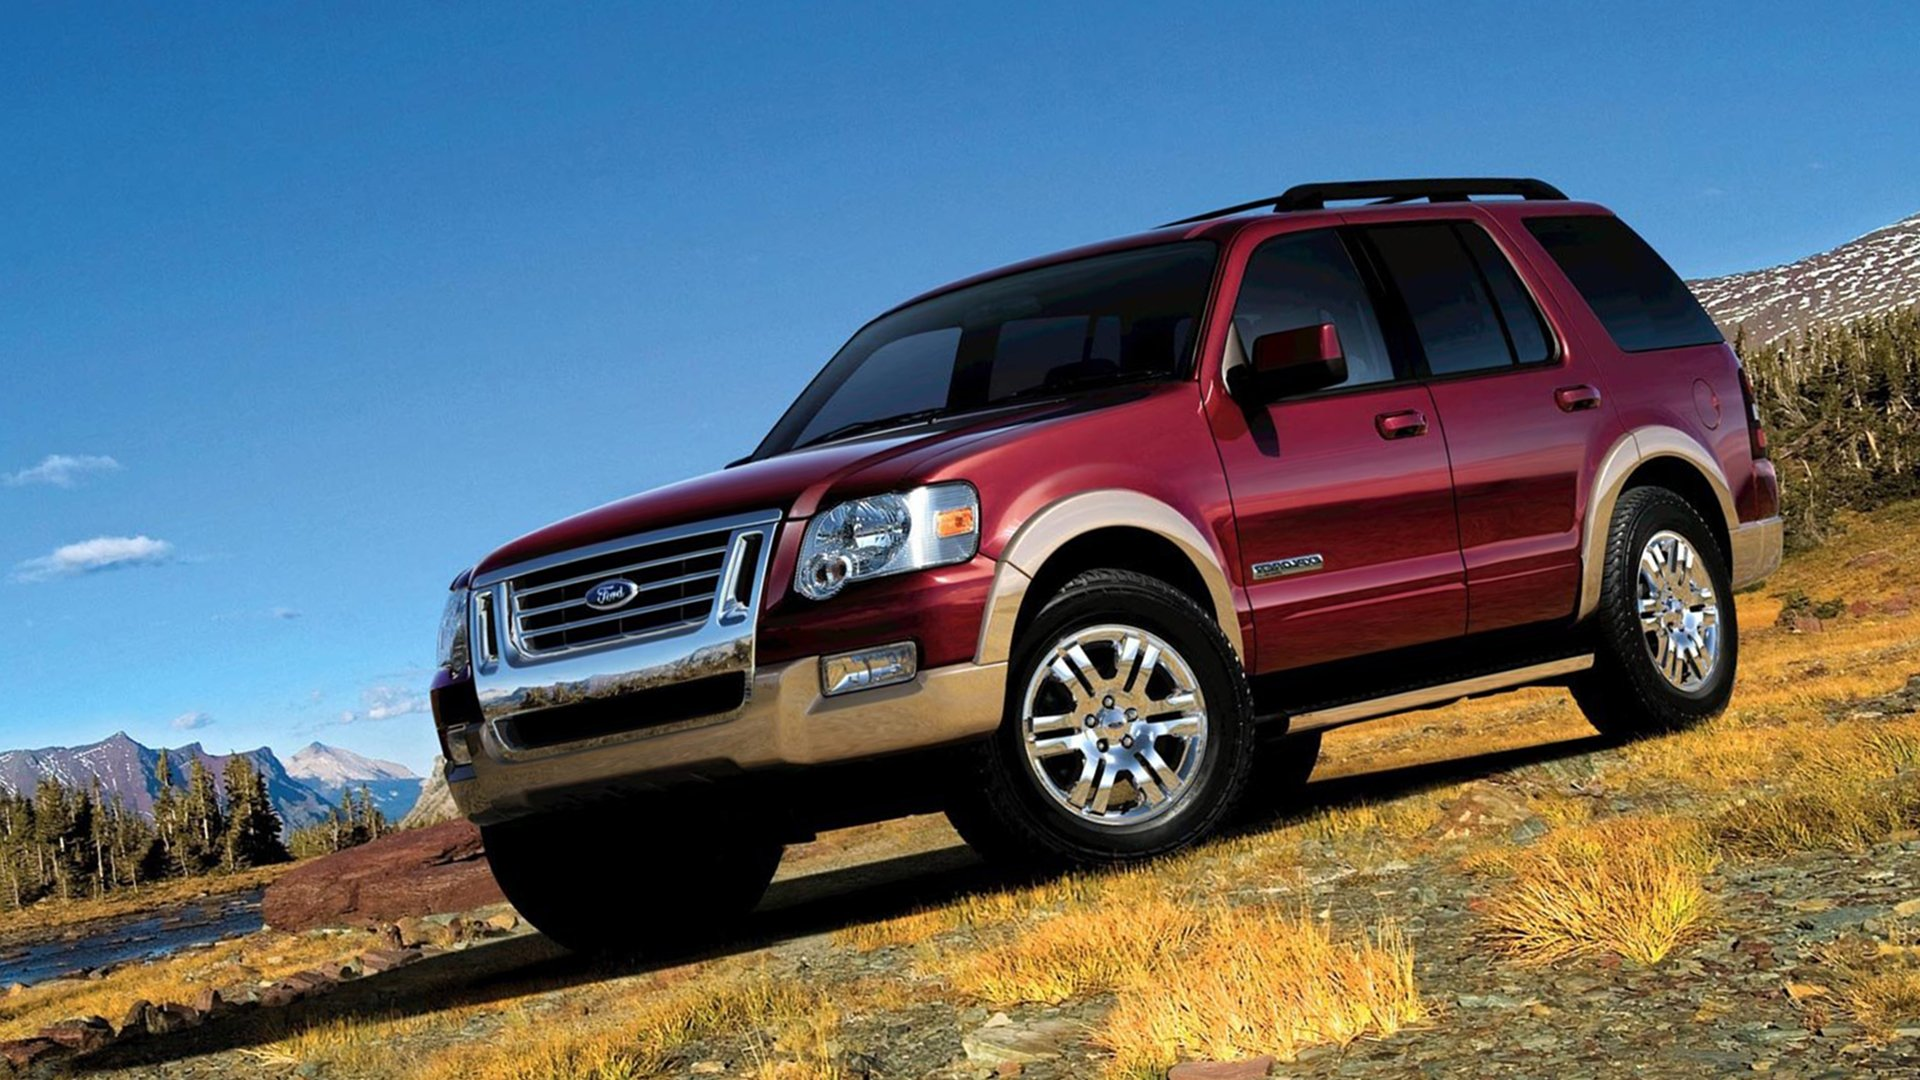 Turbo V8 Ford Explorer HD